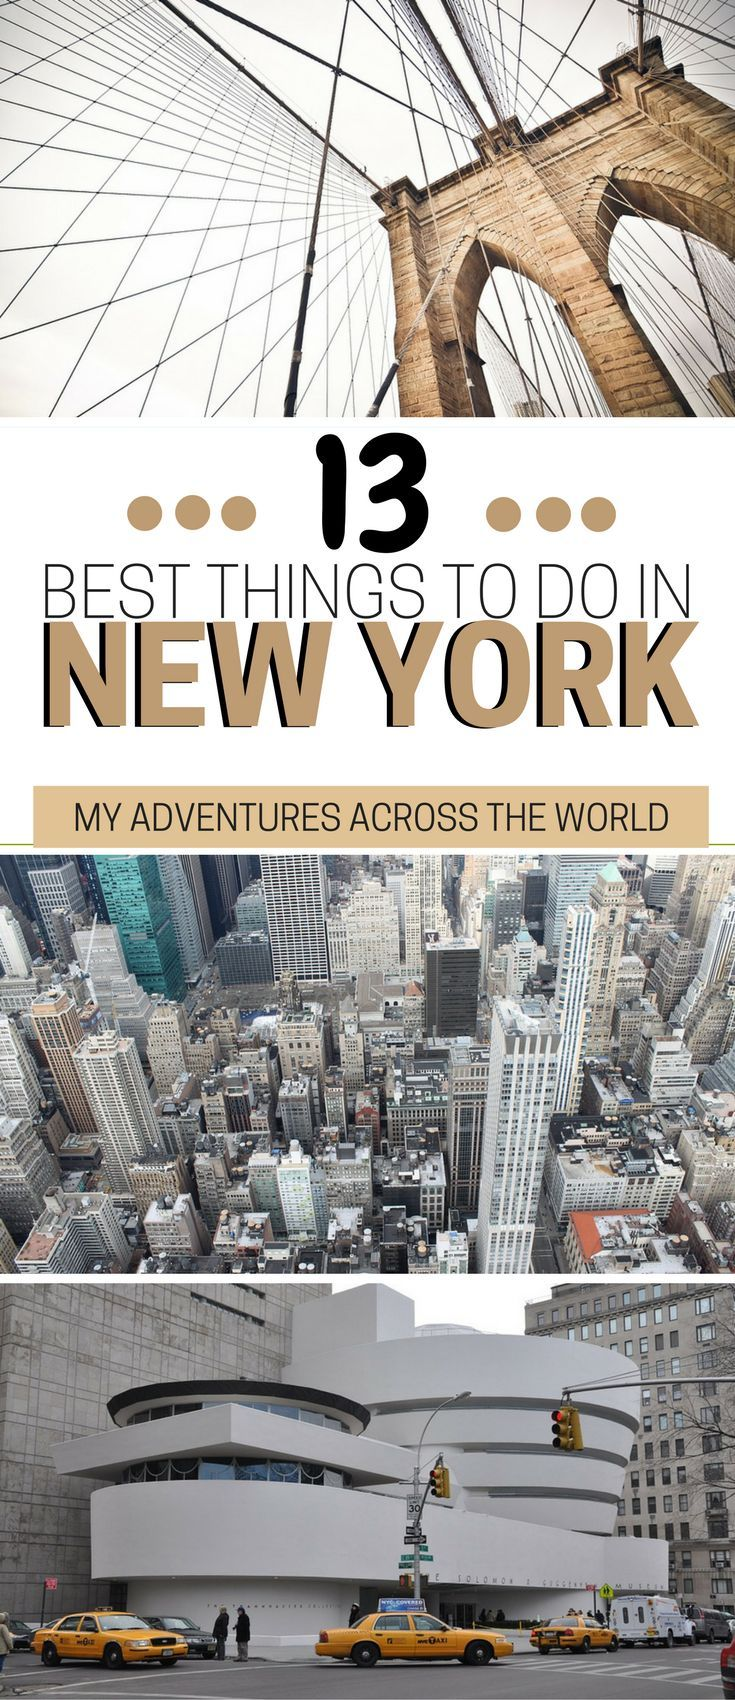 Visiting the Big Apple soon? Check out this list of the best things to do in New York City which are honestly unmissable! If you are wondering what to do in New York, don't miss this exhaustive guide. | New York city travel guide | New York travel tips #N